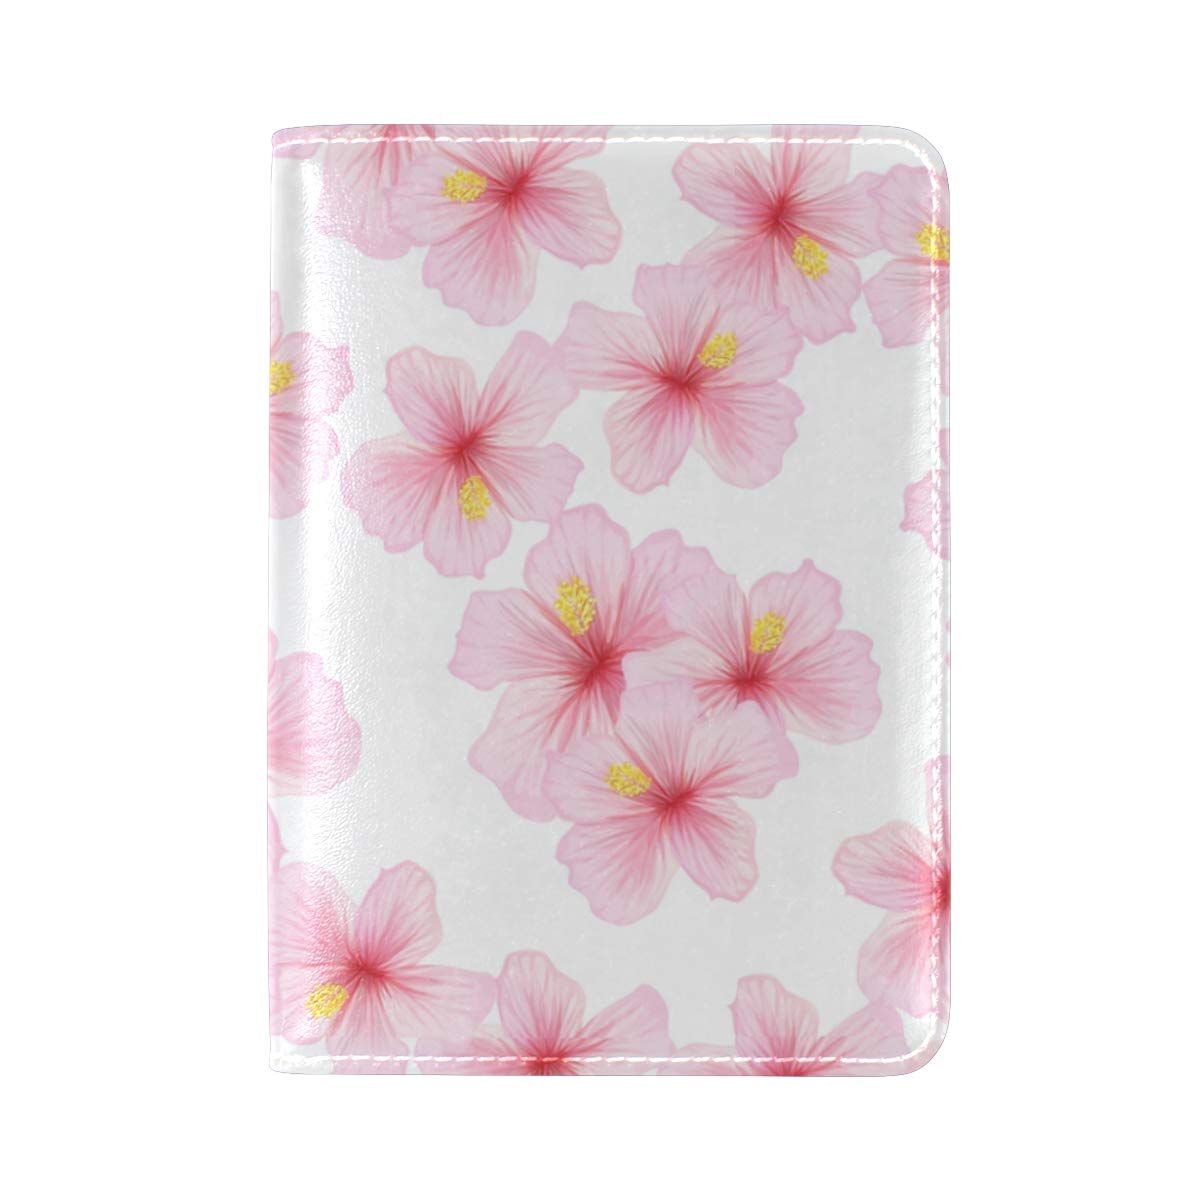 Japanese Cherry Pink Flower Sakura One Pocket Leather Passport Holder Cover Case Protector for Men Women Travel